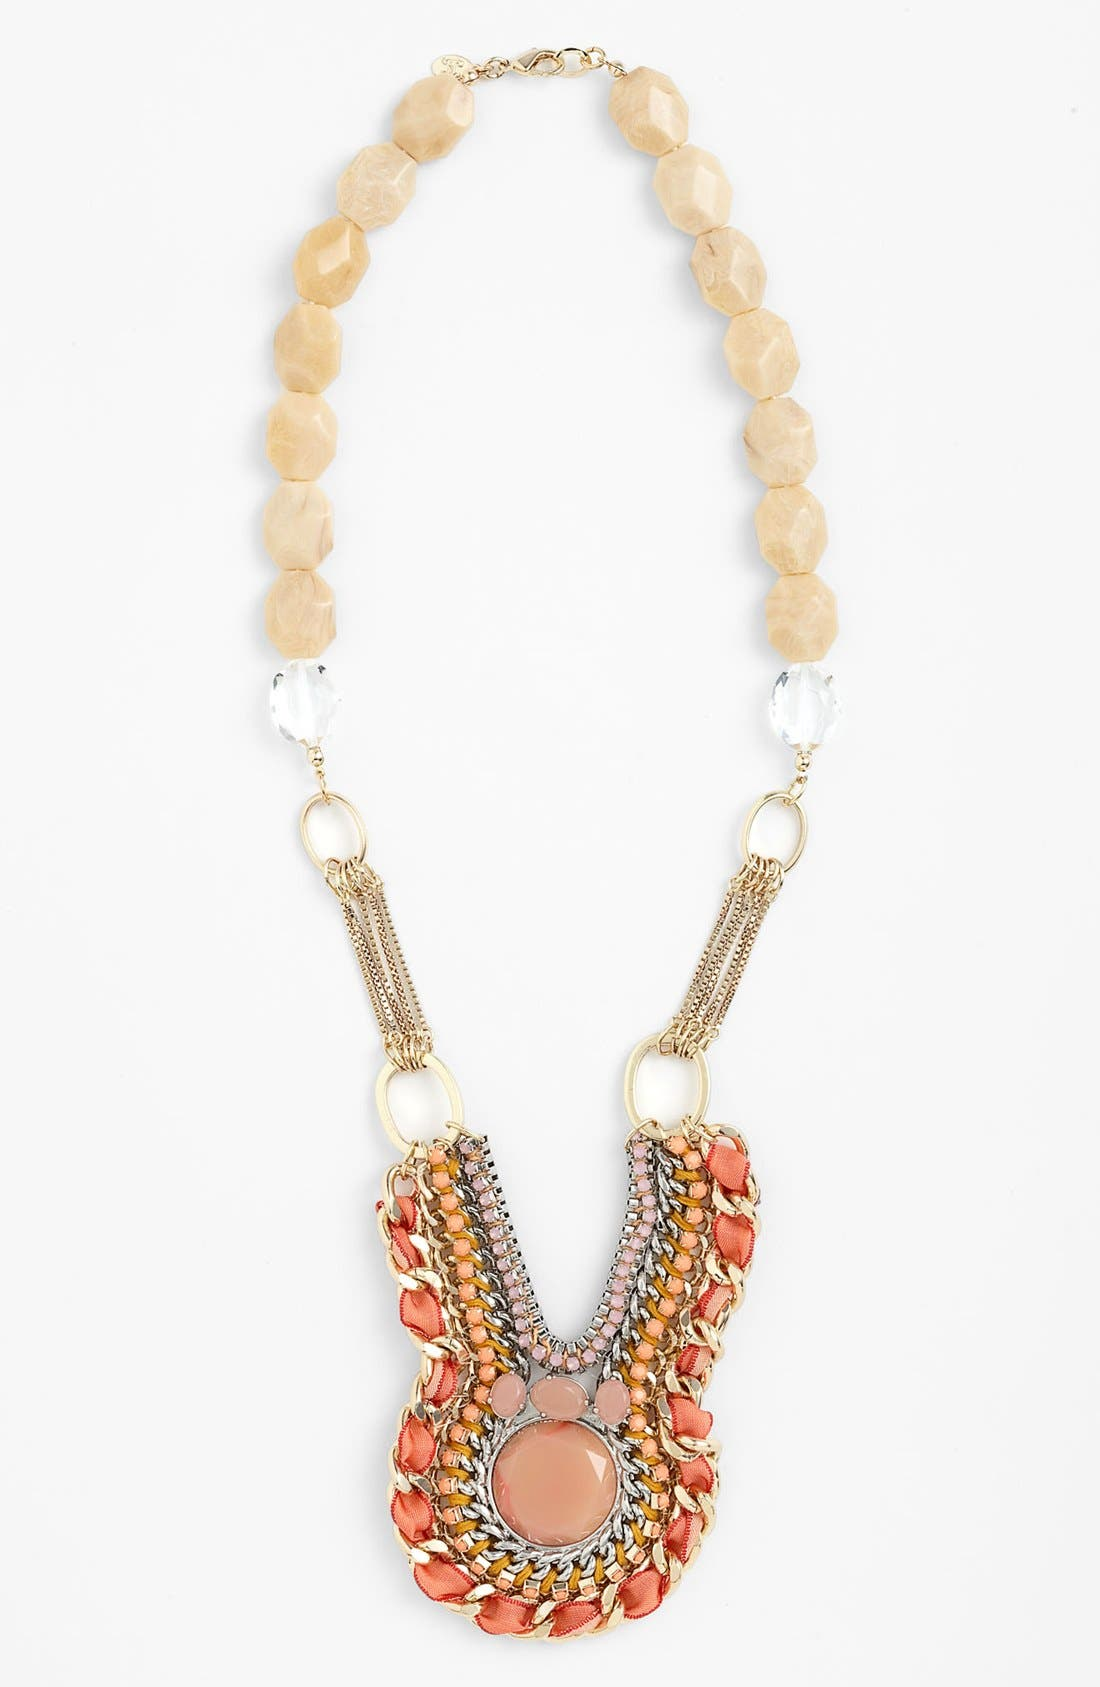 Main Image - Lydell NYC Mixed Media Statement Bib Necklace